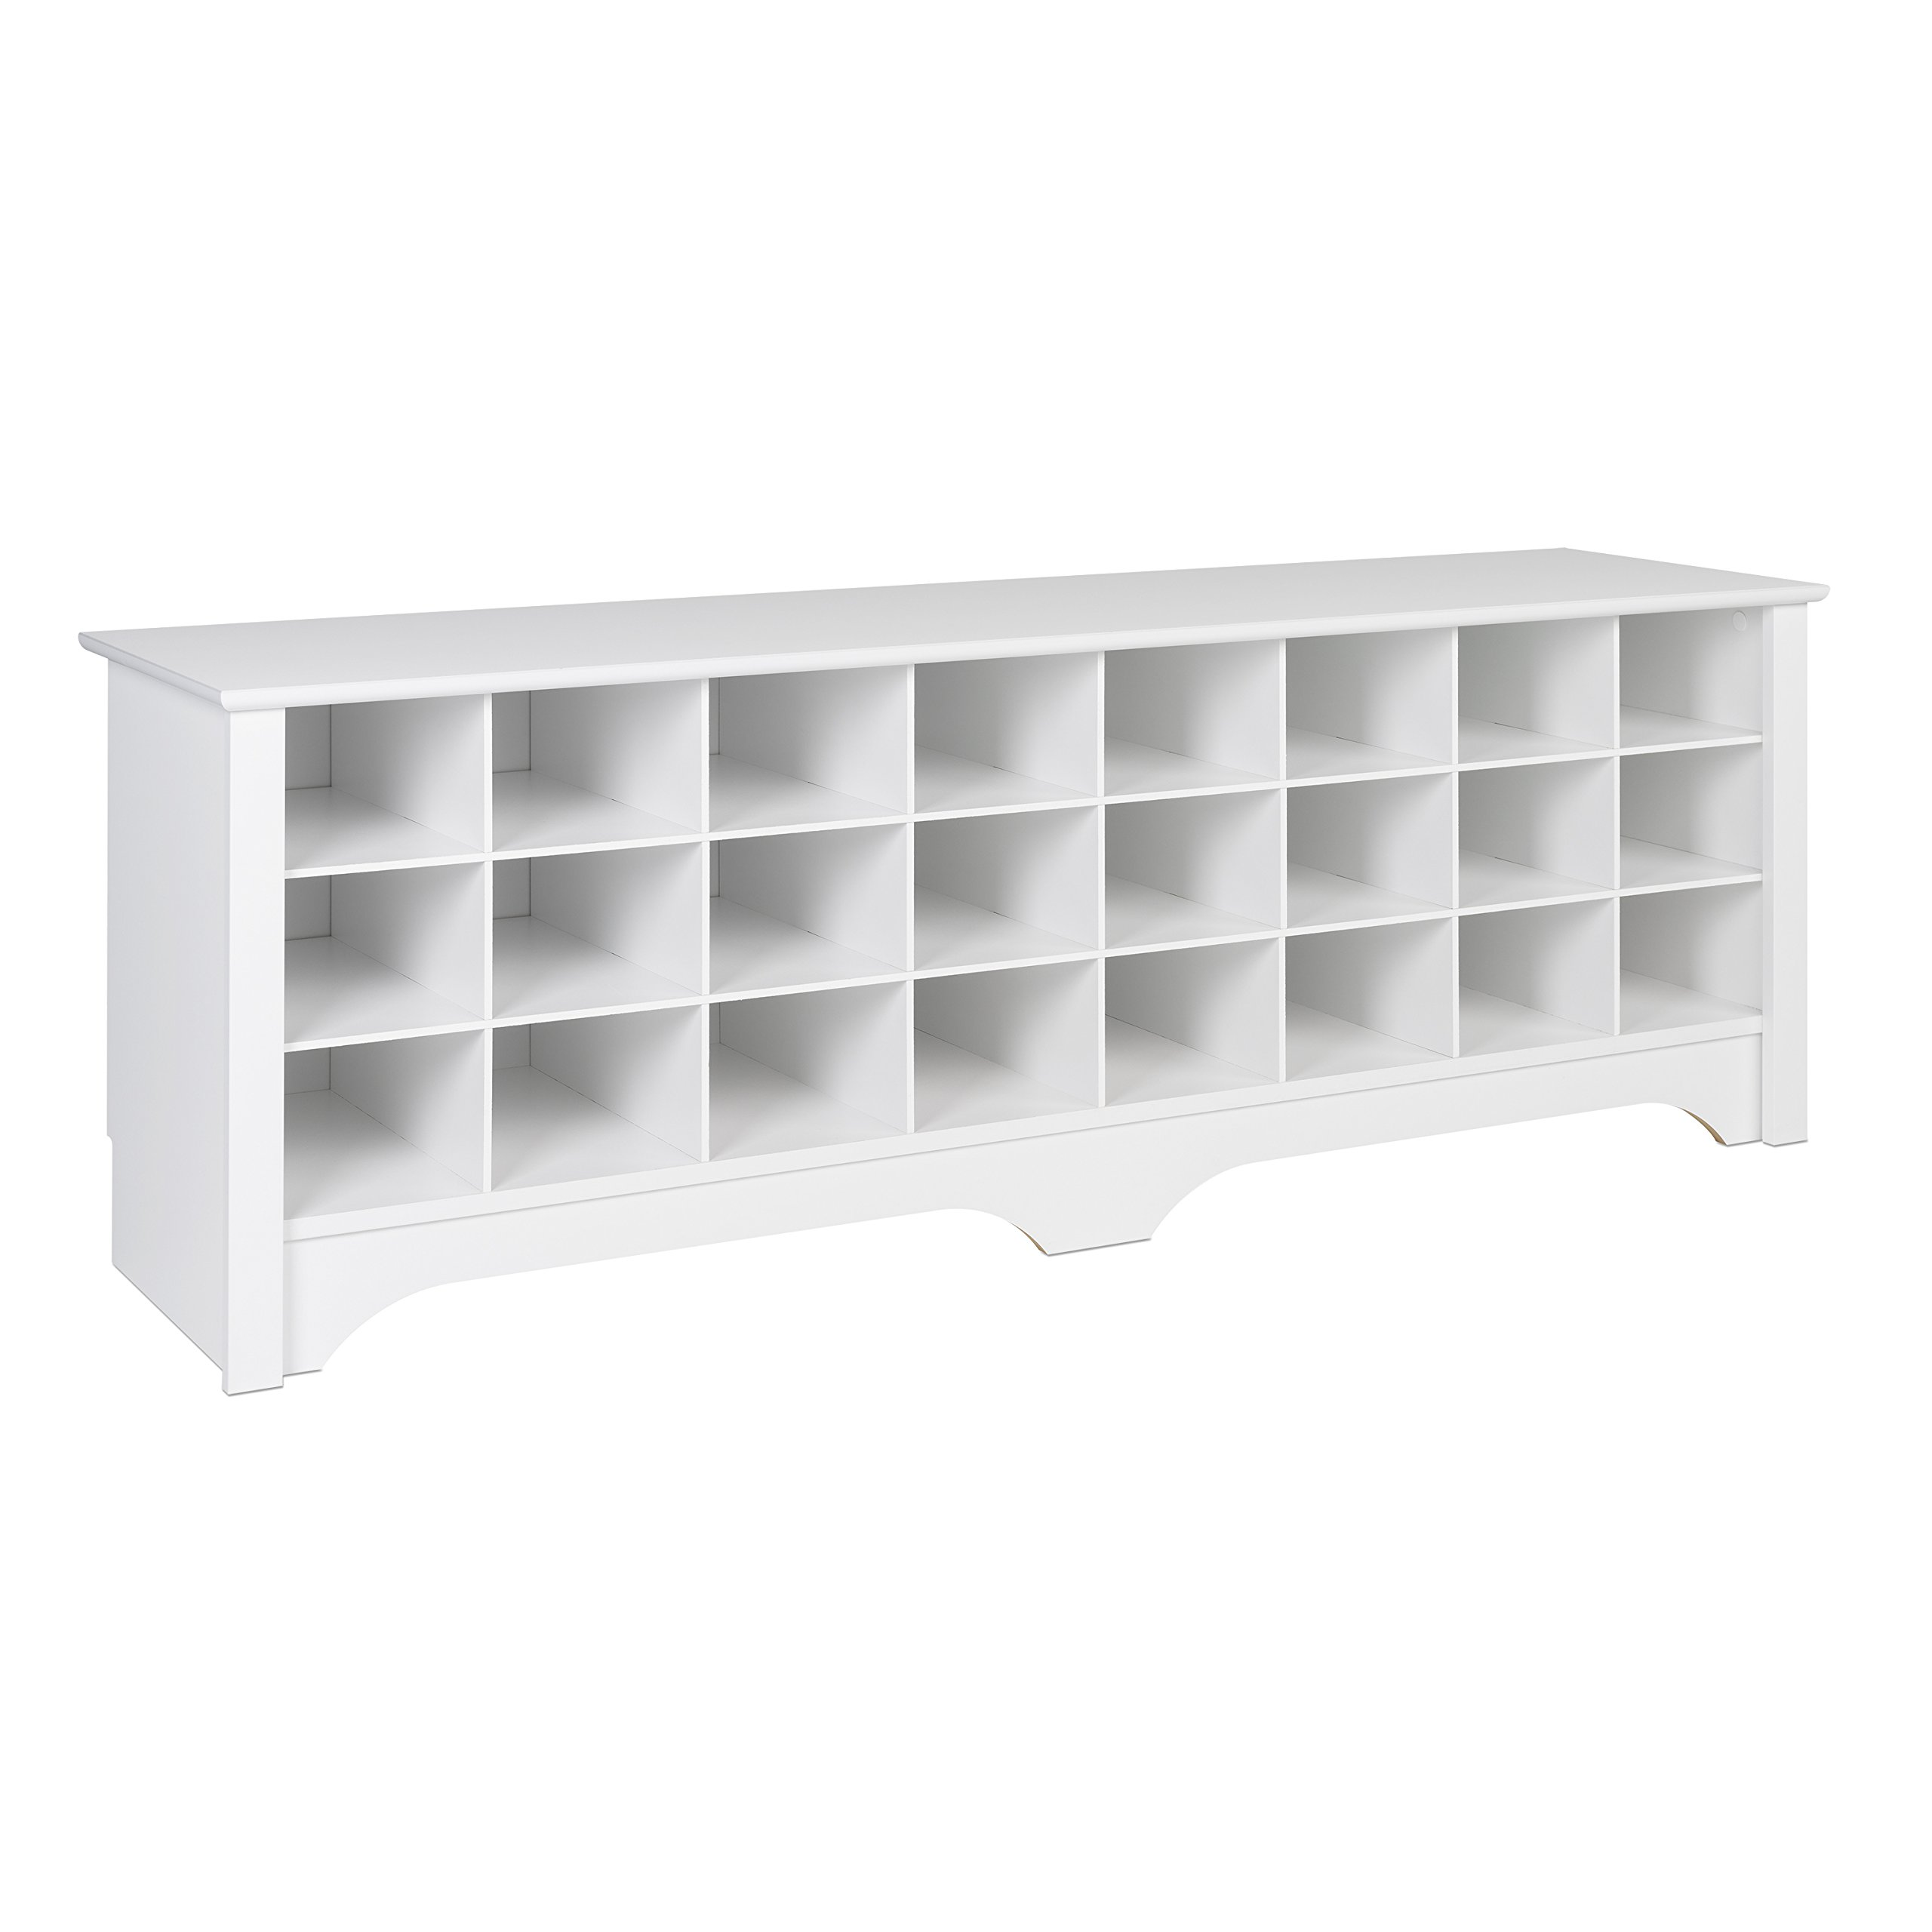 Prepac WSS-6020 24 Pair Shoe Storage Cubby Bench, White by Prepac